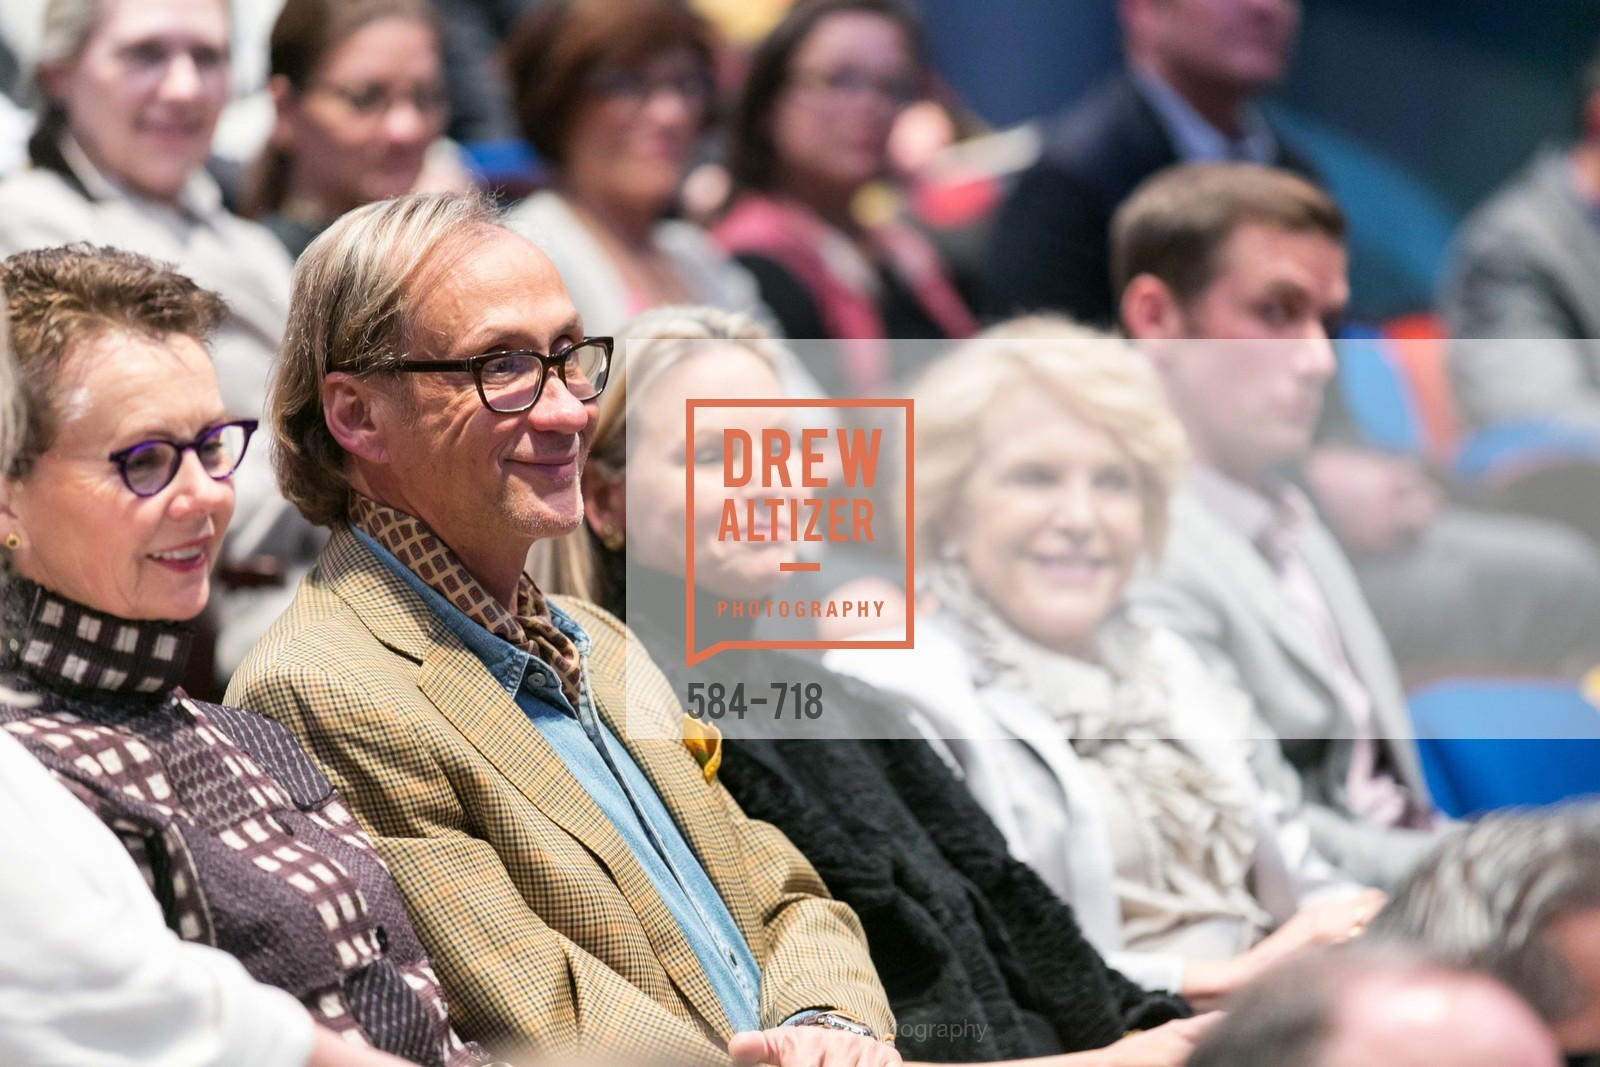 Kathleen Taylor, Ned Mobley, Brenda Mickel, Anne Lawrence, ICAA Hosts NICKY HASLAM'S Lecture and Book Signing, US, May 11th, 2015,Drew Altizer, Drew Altizer Photography, full-service agency, private events, San Francisco photographer, photographer california